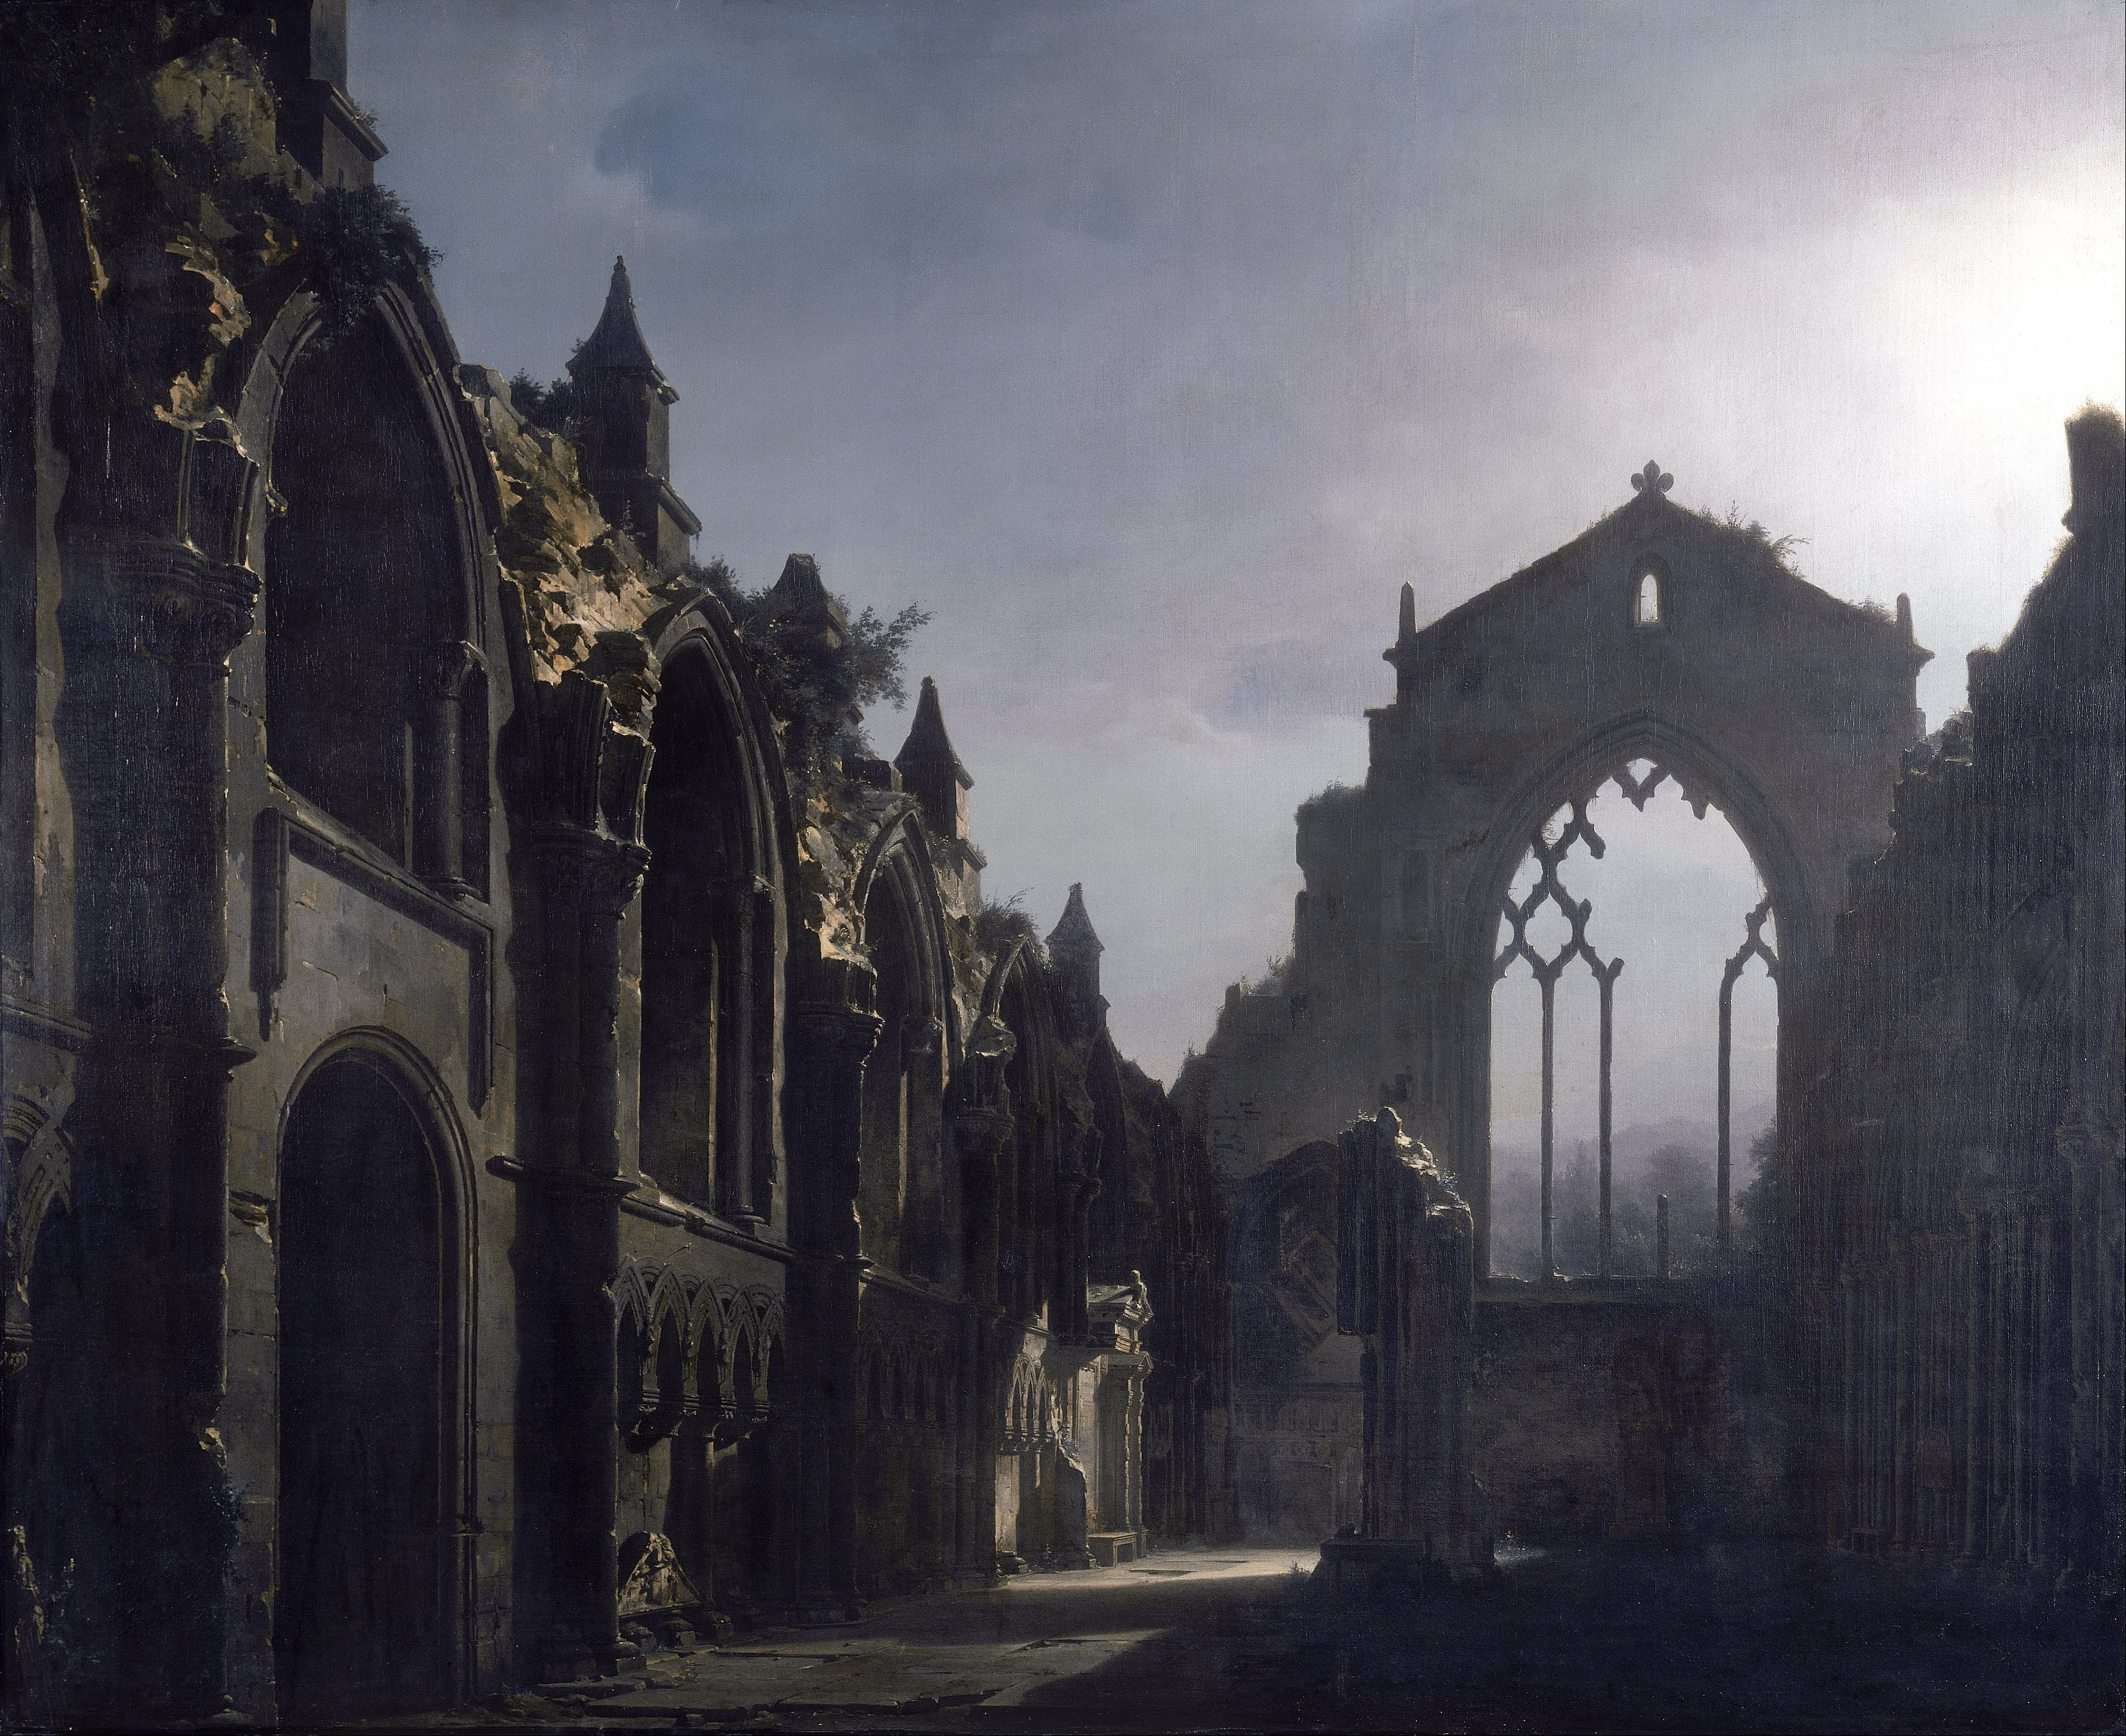 Ruins in art: Louis Daguerre, The Ruins of Holyrood Chapel,